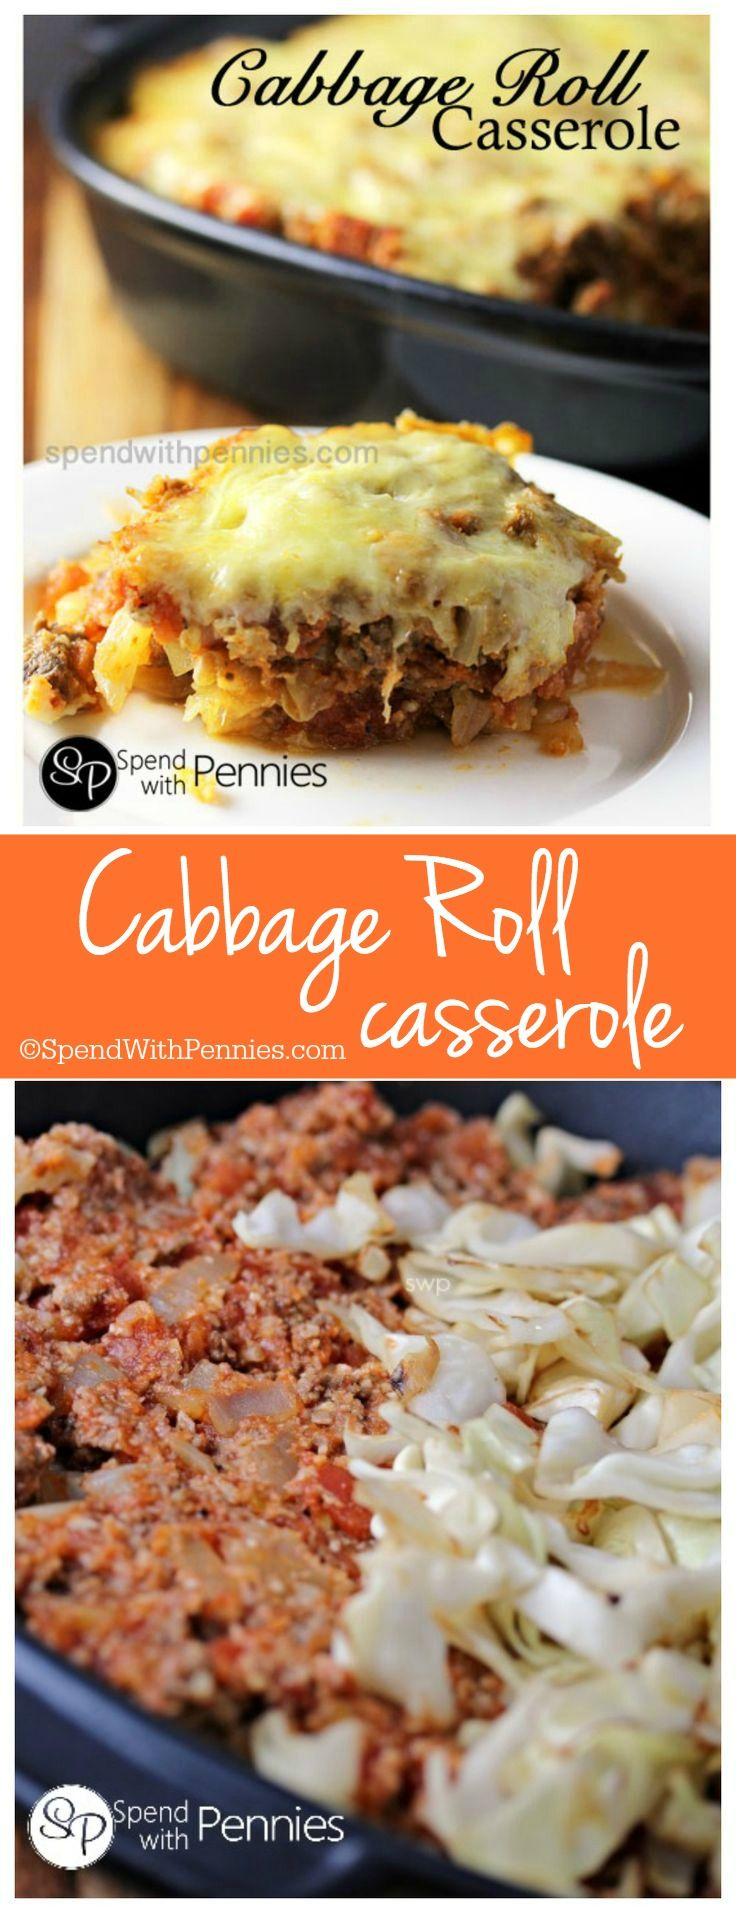 This Cabbage Roll Casserole recipes layers all of the delicious flavors of cabbage rolls without the rolling! No rice.